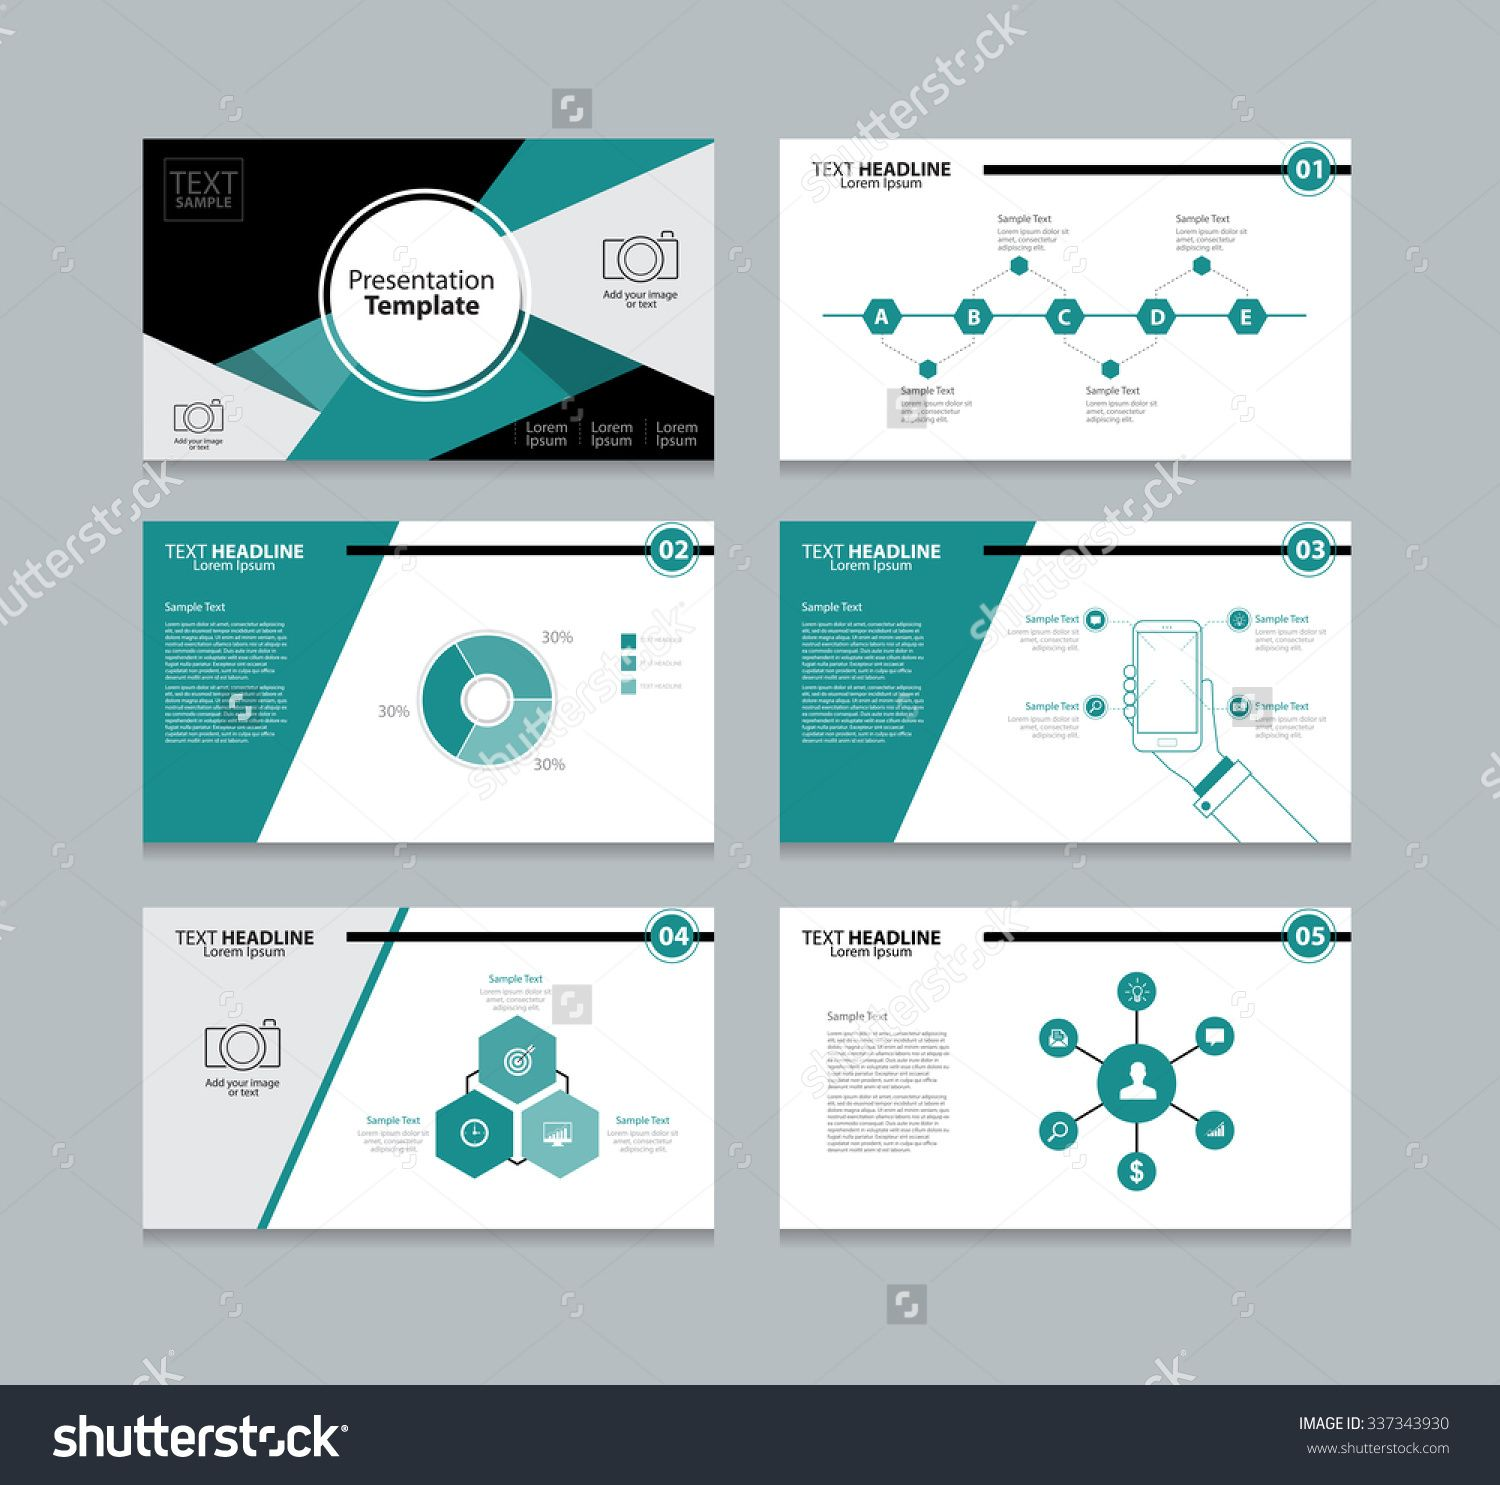 slide template design - gse.bookbinder.co, Powerpoint templates